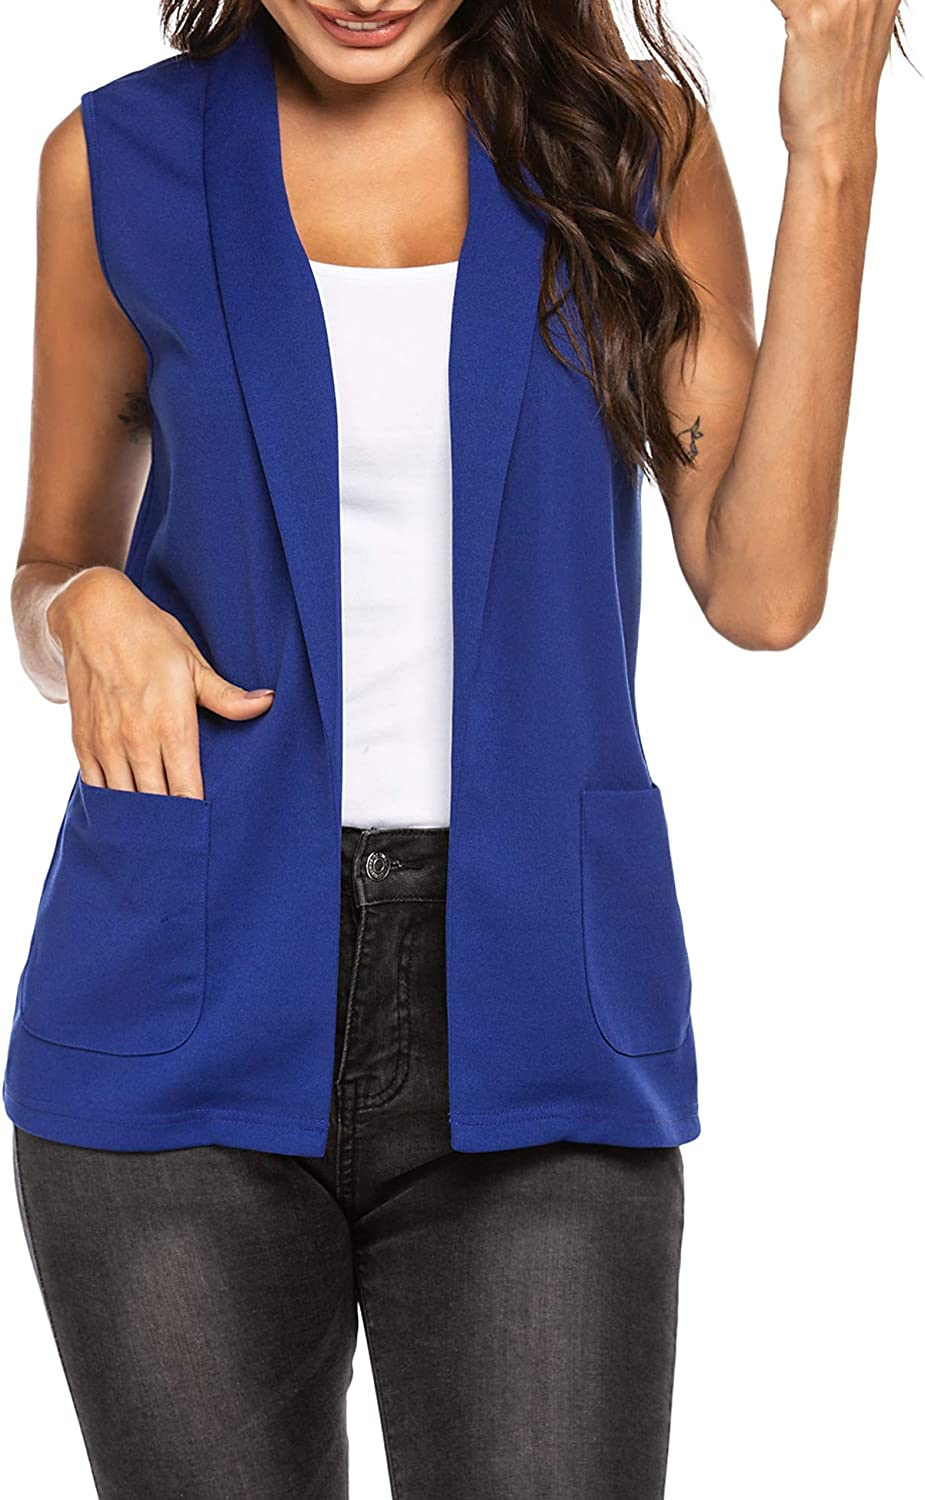 HOTLOOX Womens Sleeveless Blazer Open Front Office Casual Vest Lapel Collar Cardigan with Pockets S-XXL